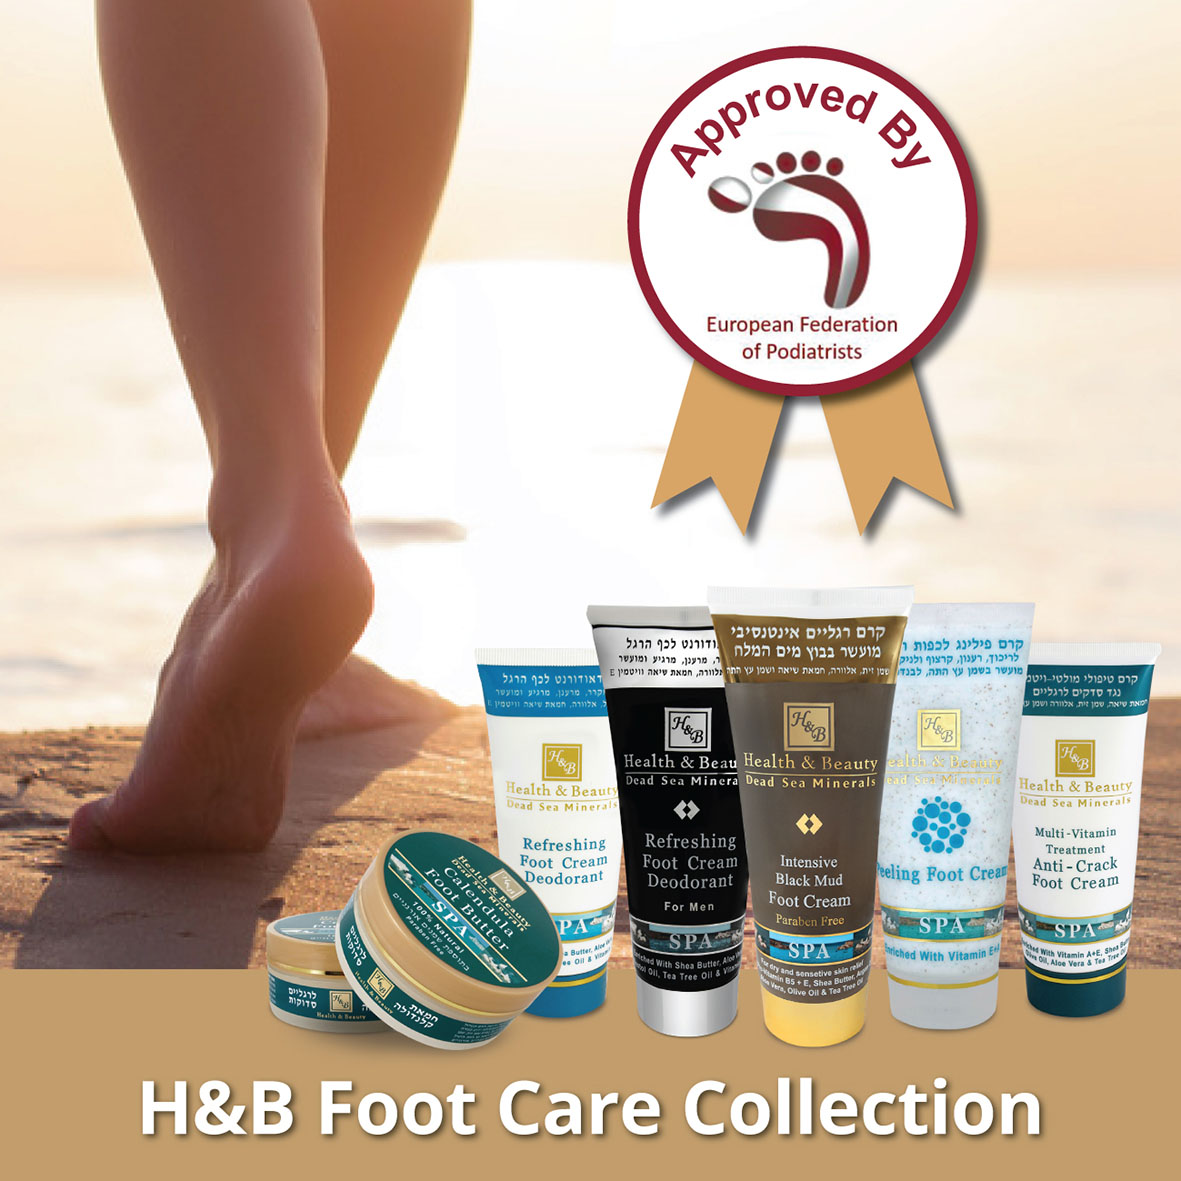 H&B Summer foot care tips